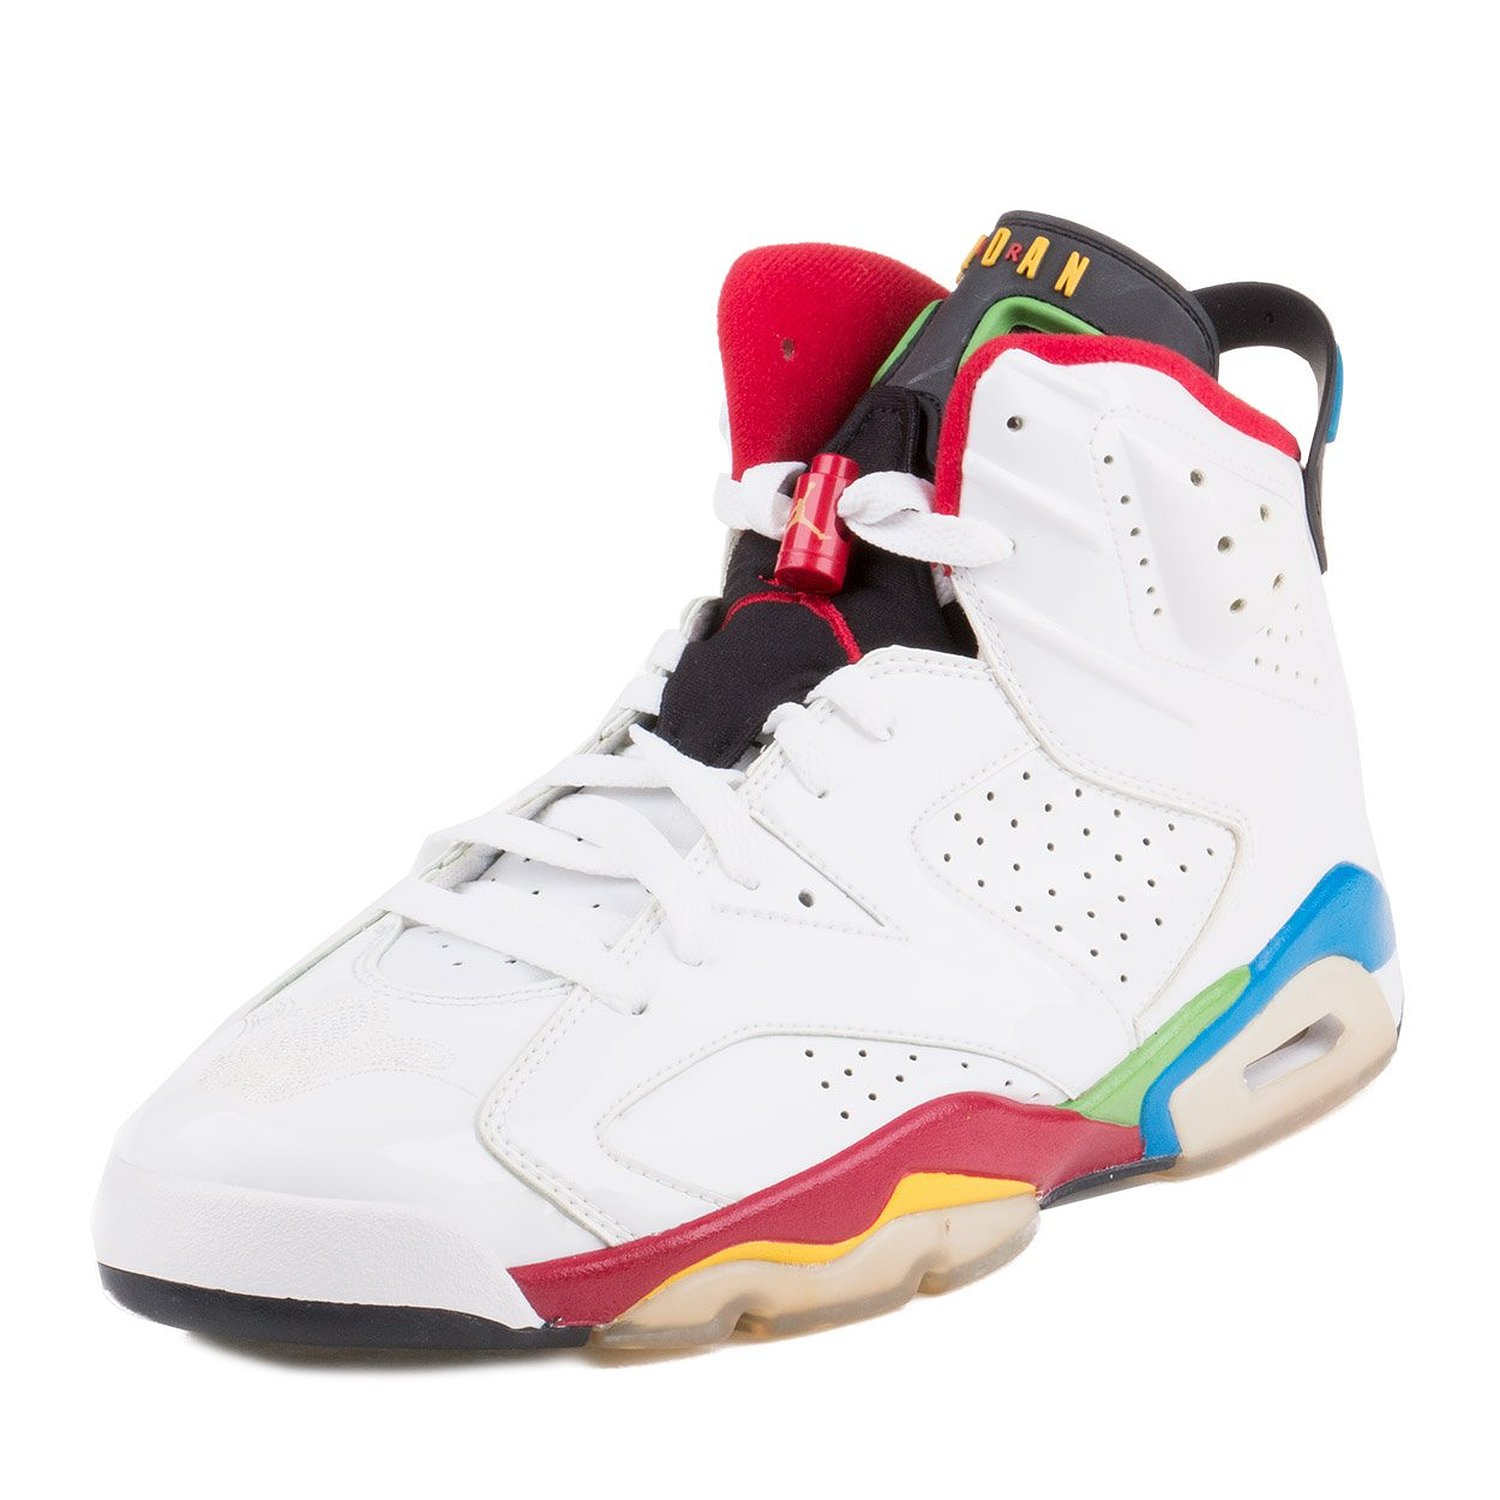 a0fe924752e5 Nike Mens Jordan Olympic 6 White Varsity Red-Green-Blue Leather Basketball  Shoes